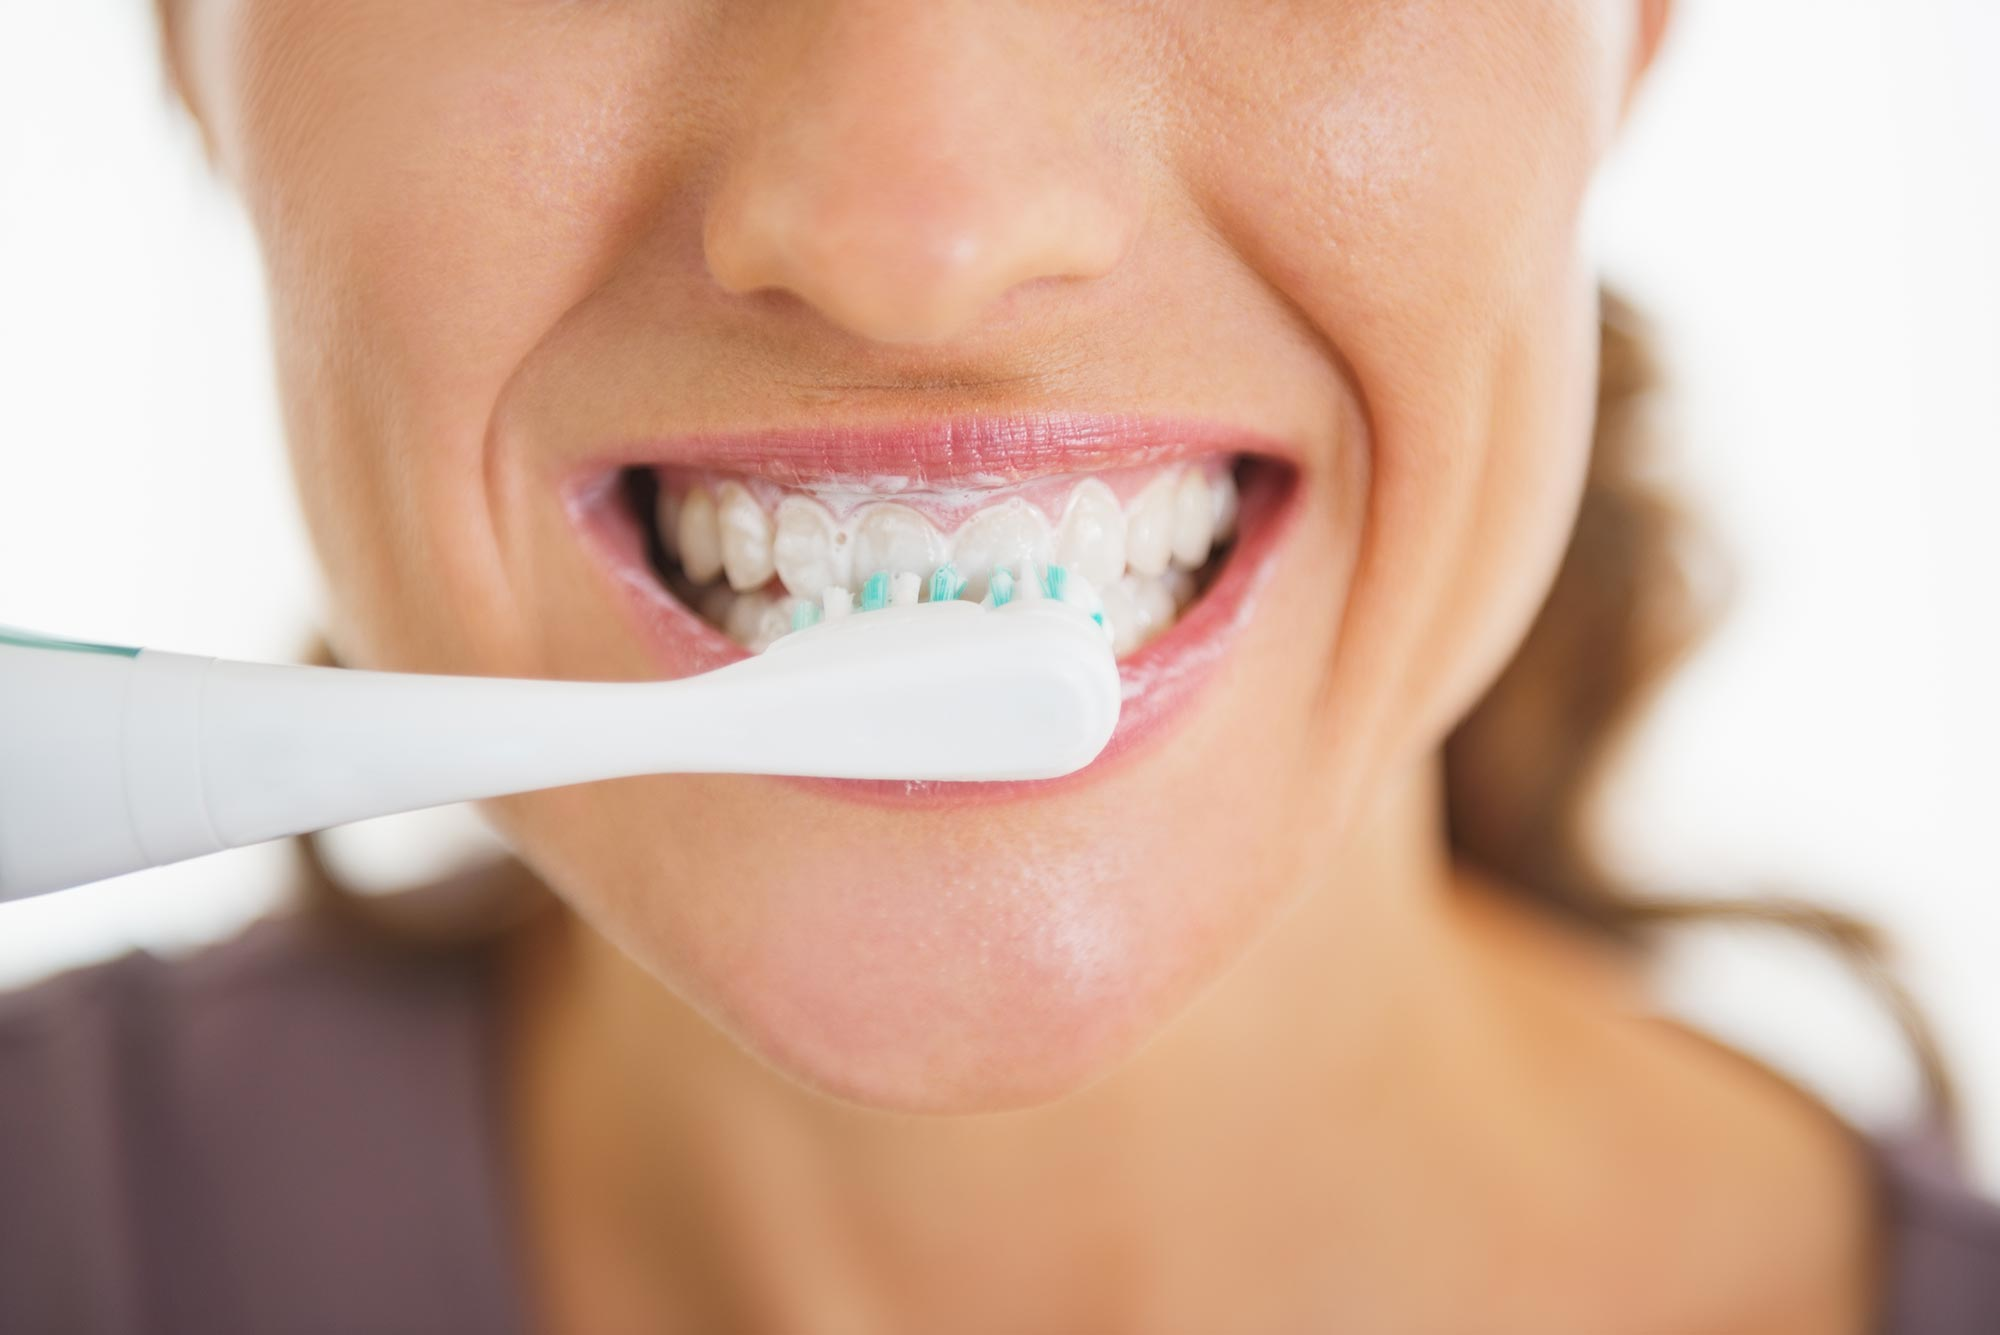 A study found brushing your teeth three times a day links to a lower risk of diabetes